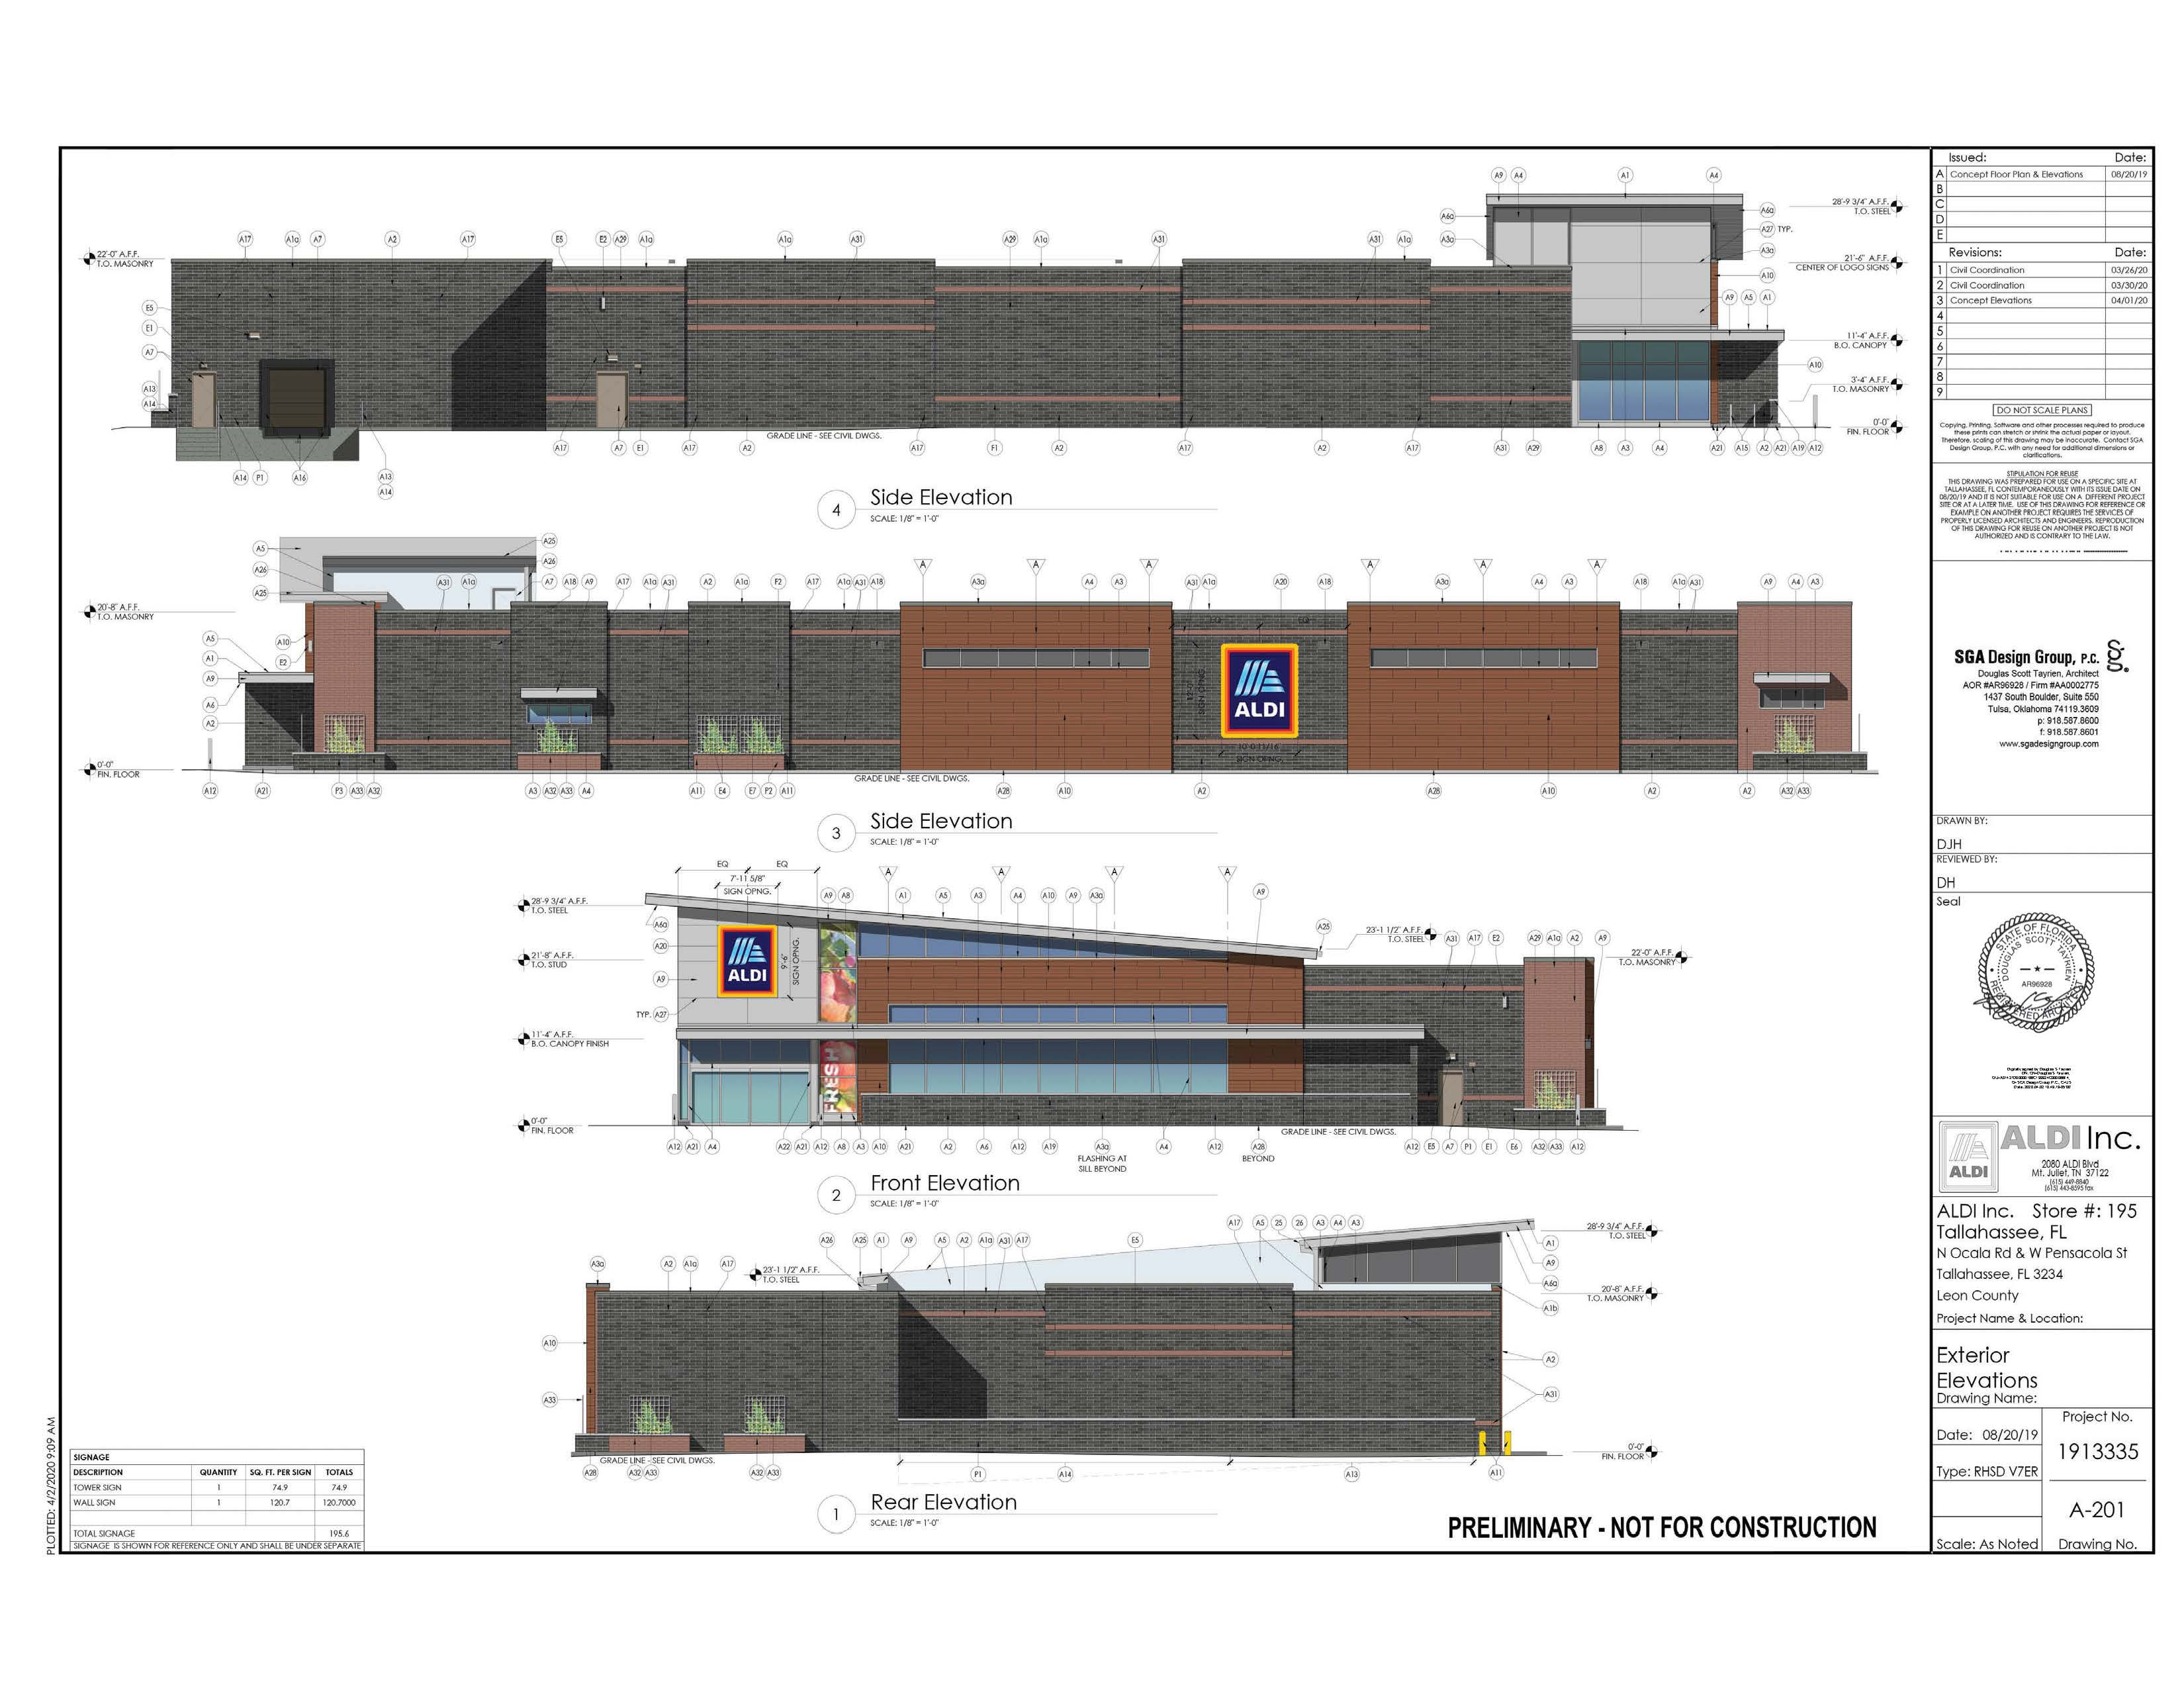 Deal Done To Build A Tallahassee Aldi Supermarket